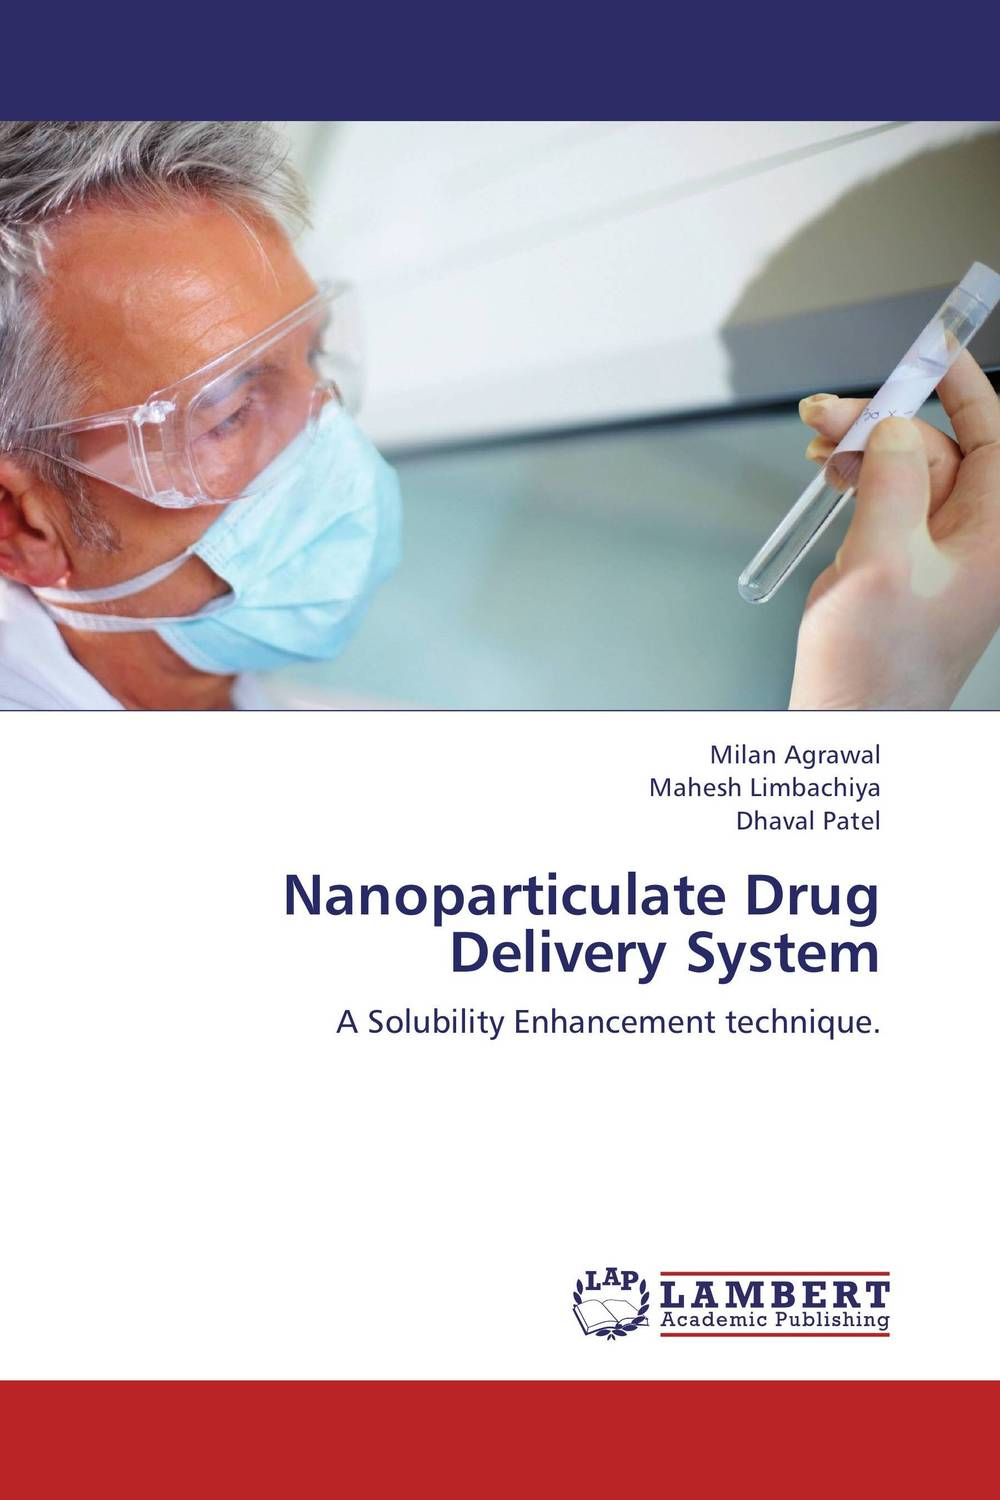 Nanoparticulate Drug Delivery System abhishek kumar sah sunil k jain and manmohan singh jangdey a recent approaches in topical drug delivery system